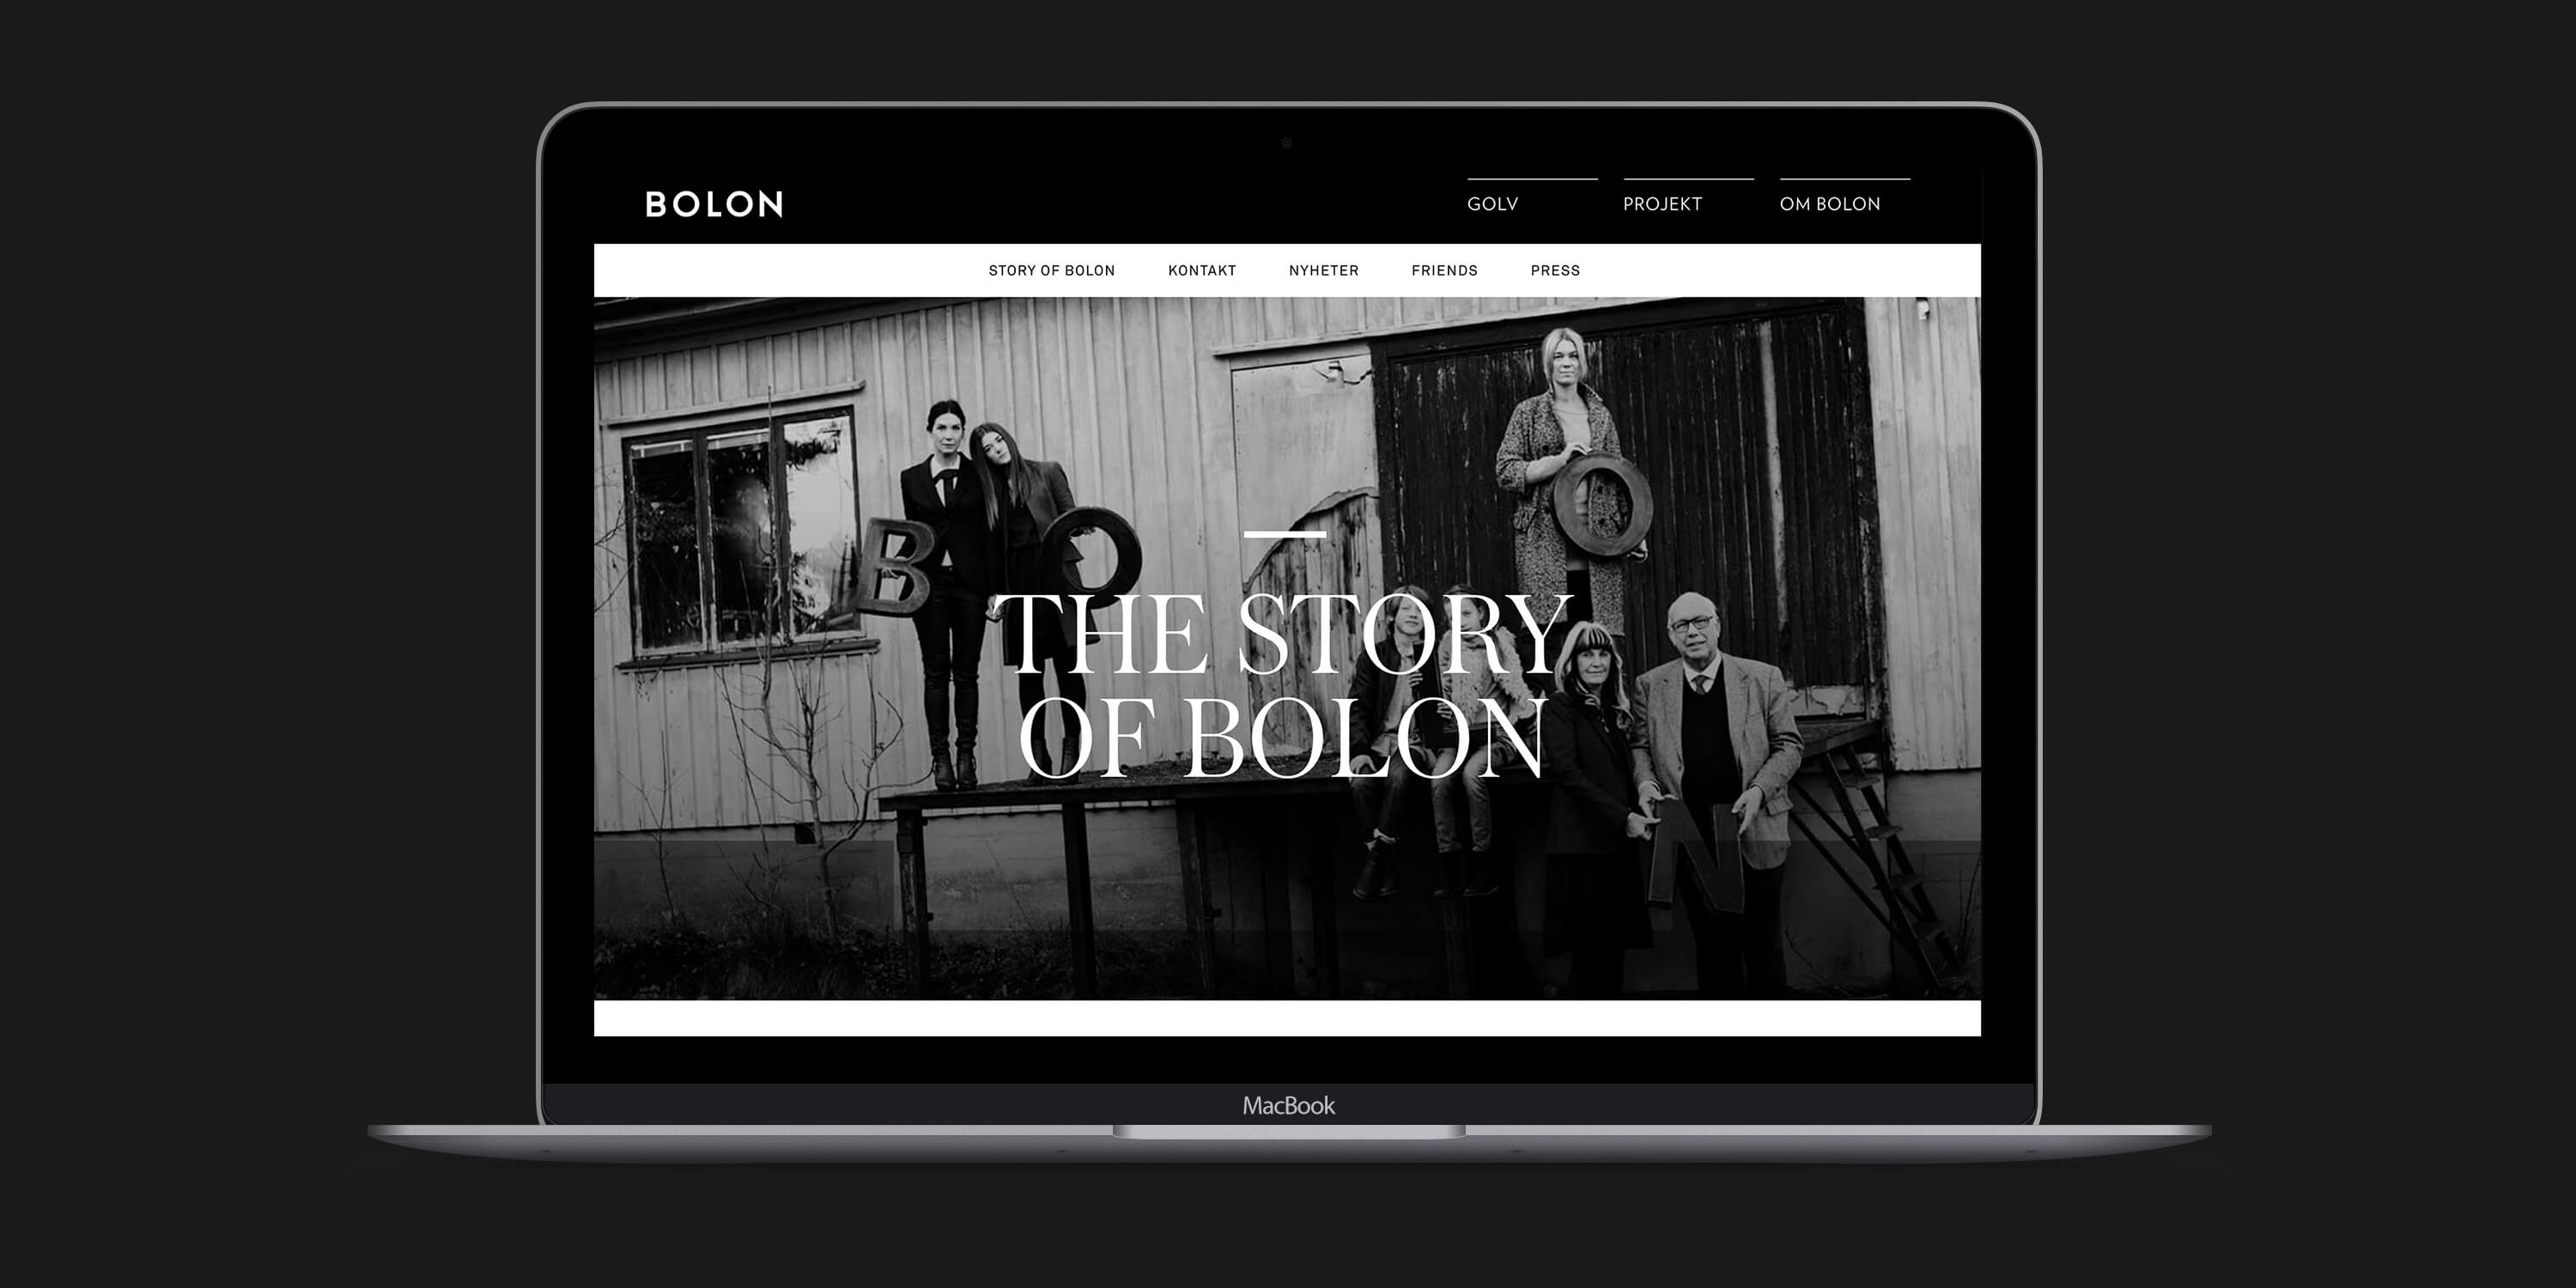 bolon_macbook